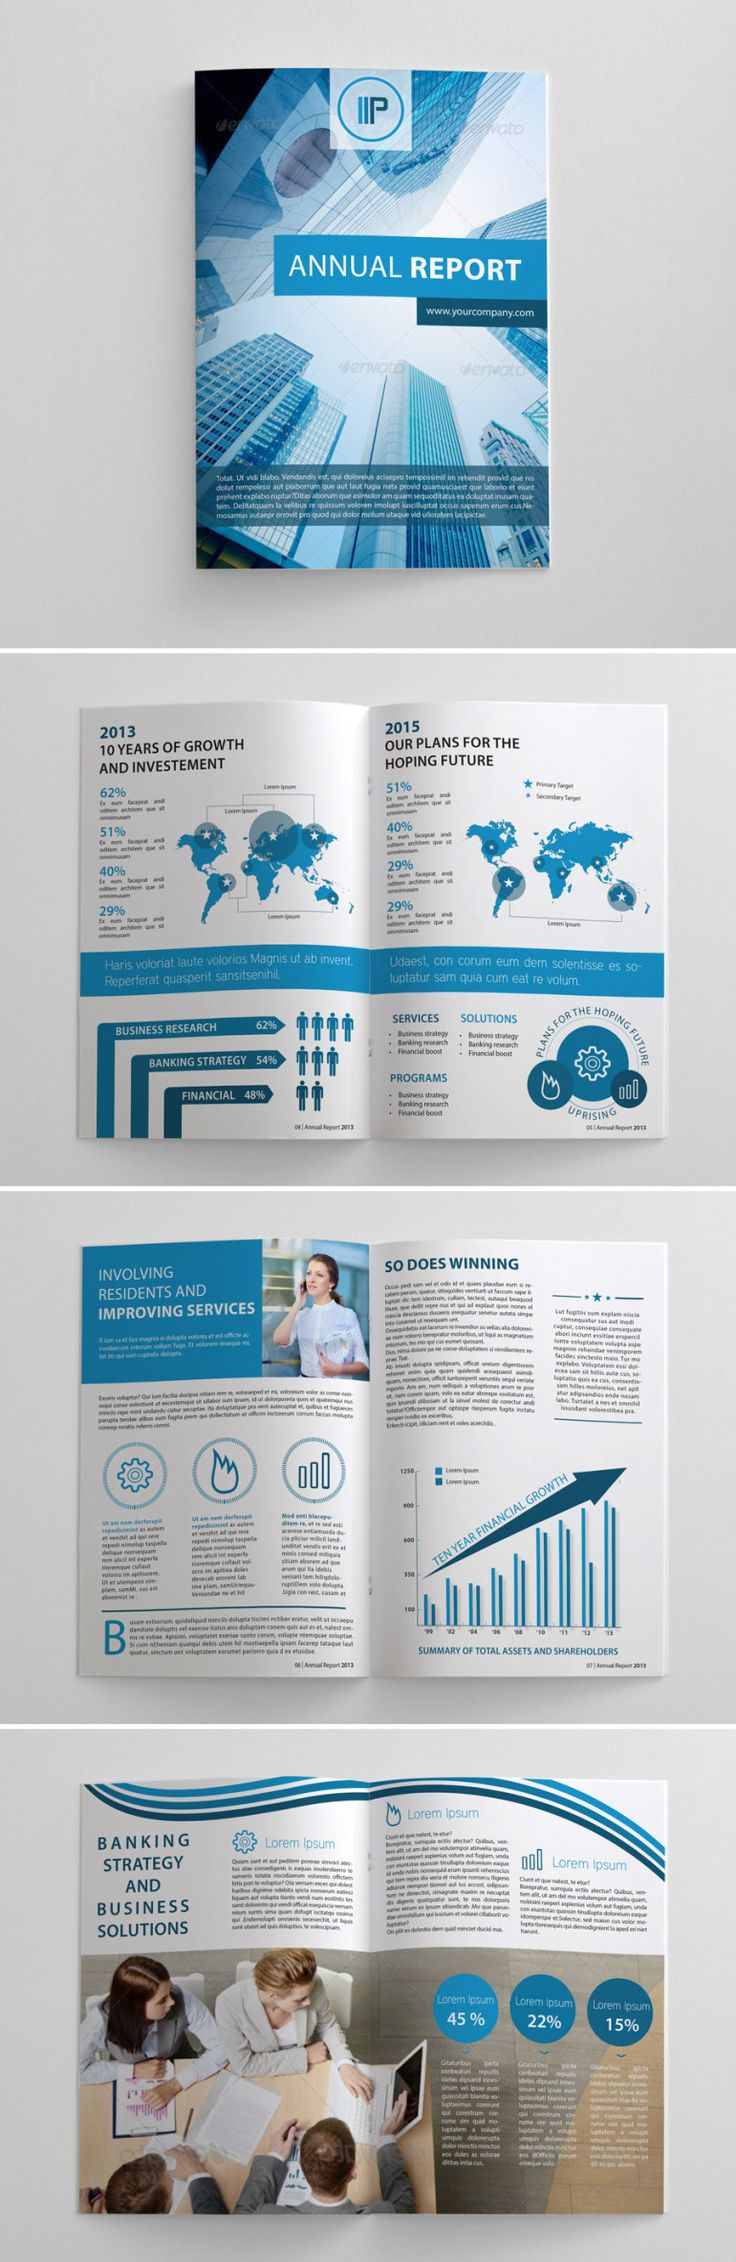 12-annual-report-brochure-design